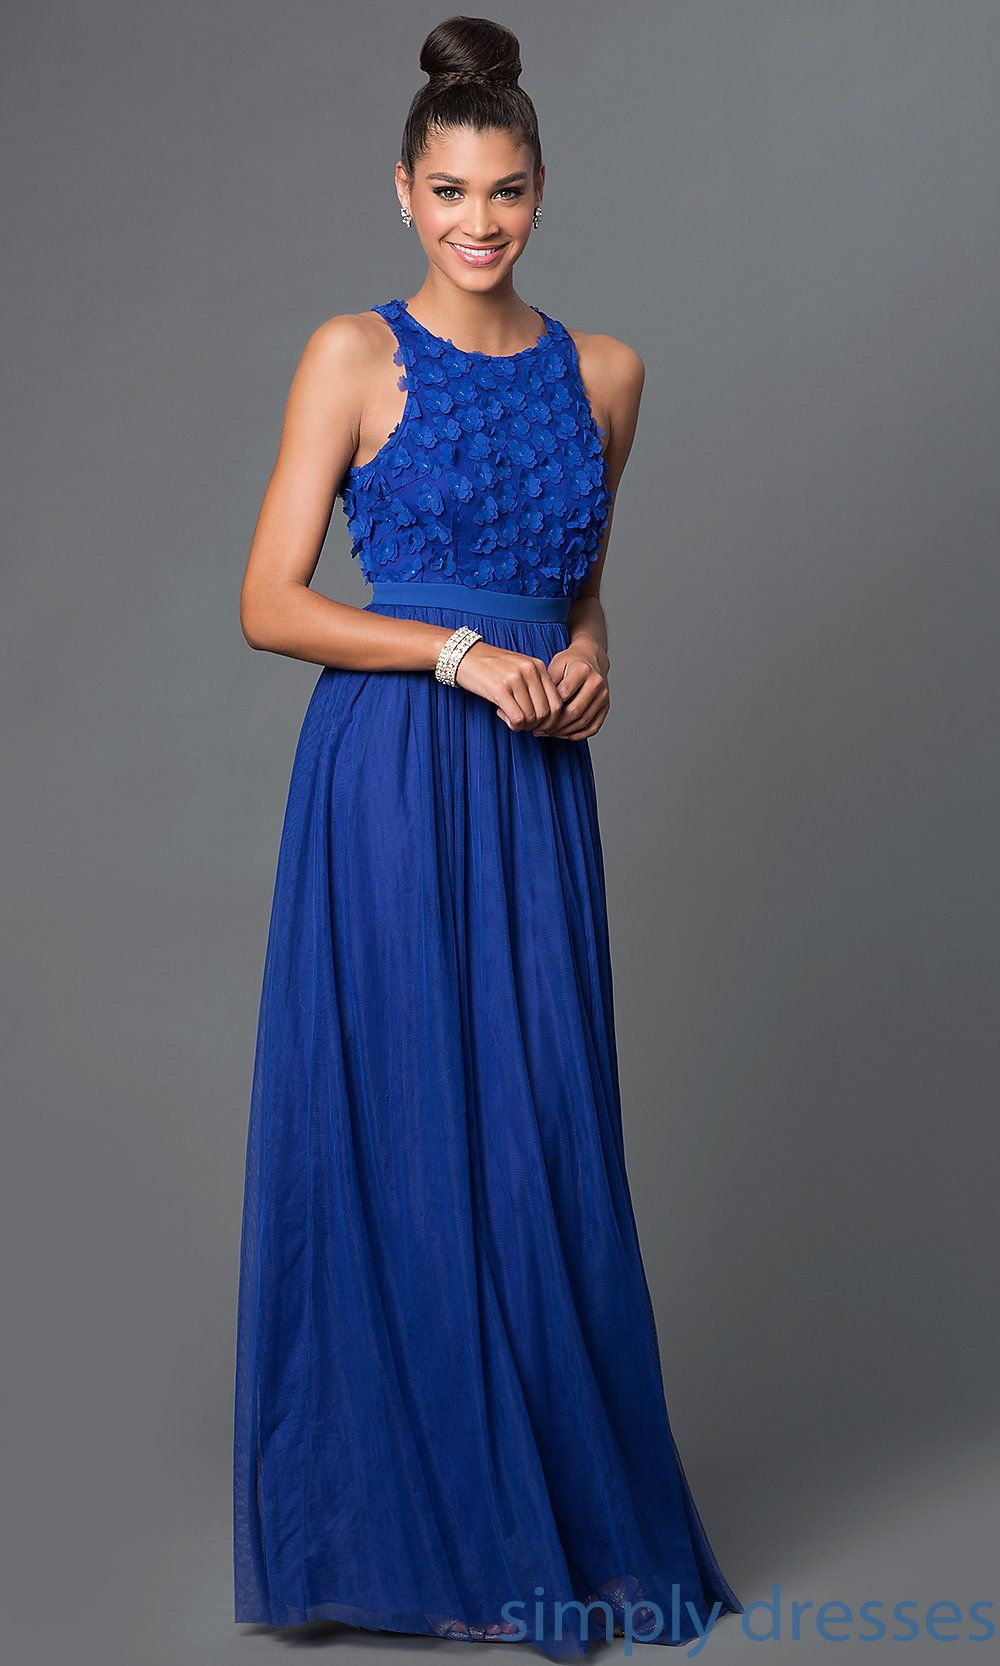 Shop royal blue prom dresses and sleeveless military ball gowns by ...